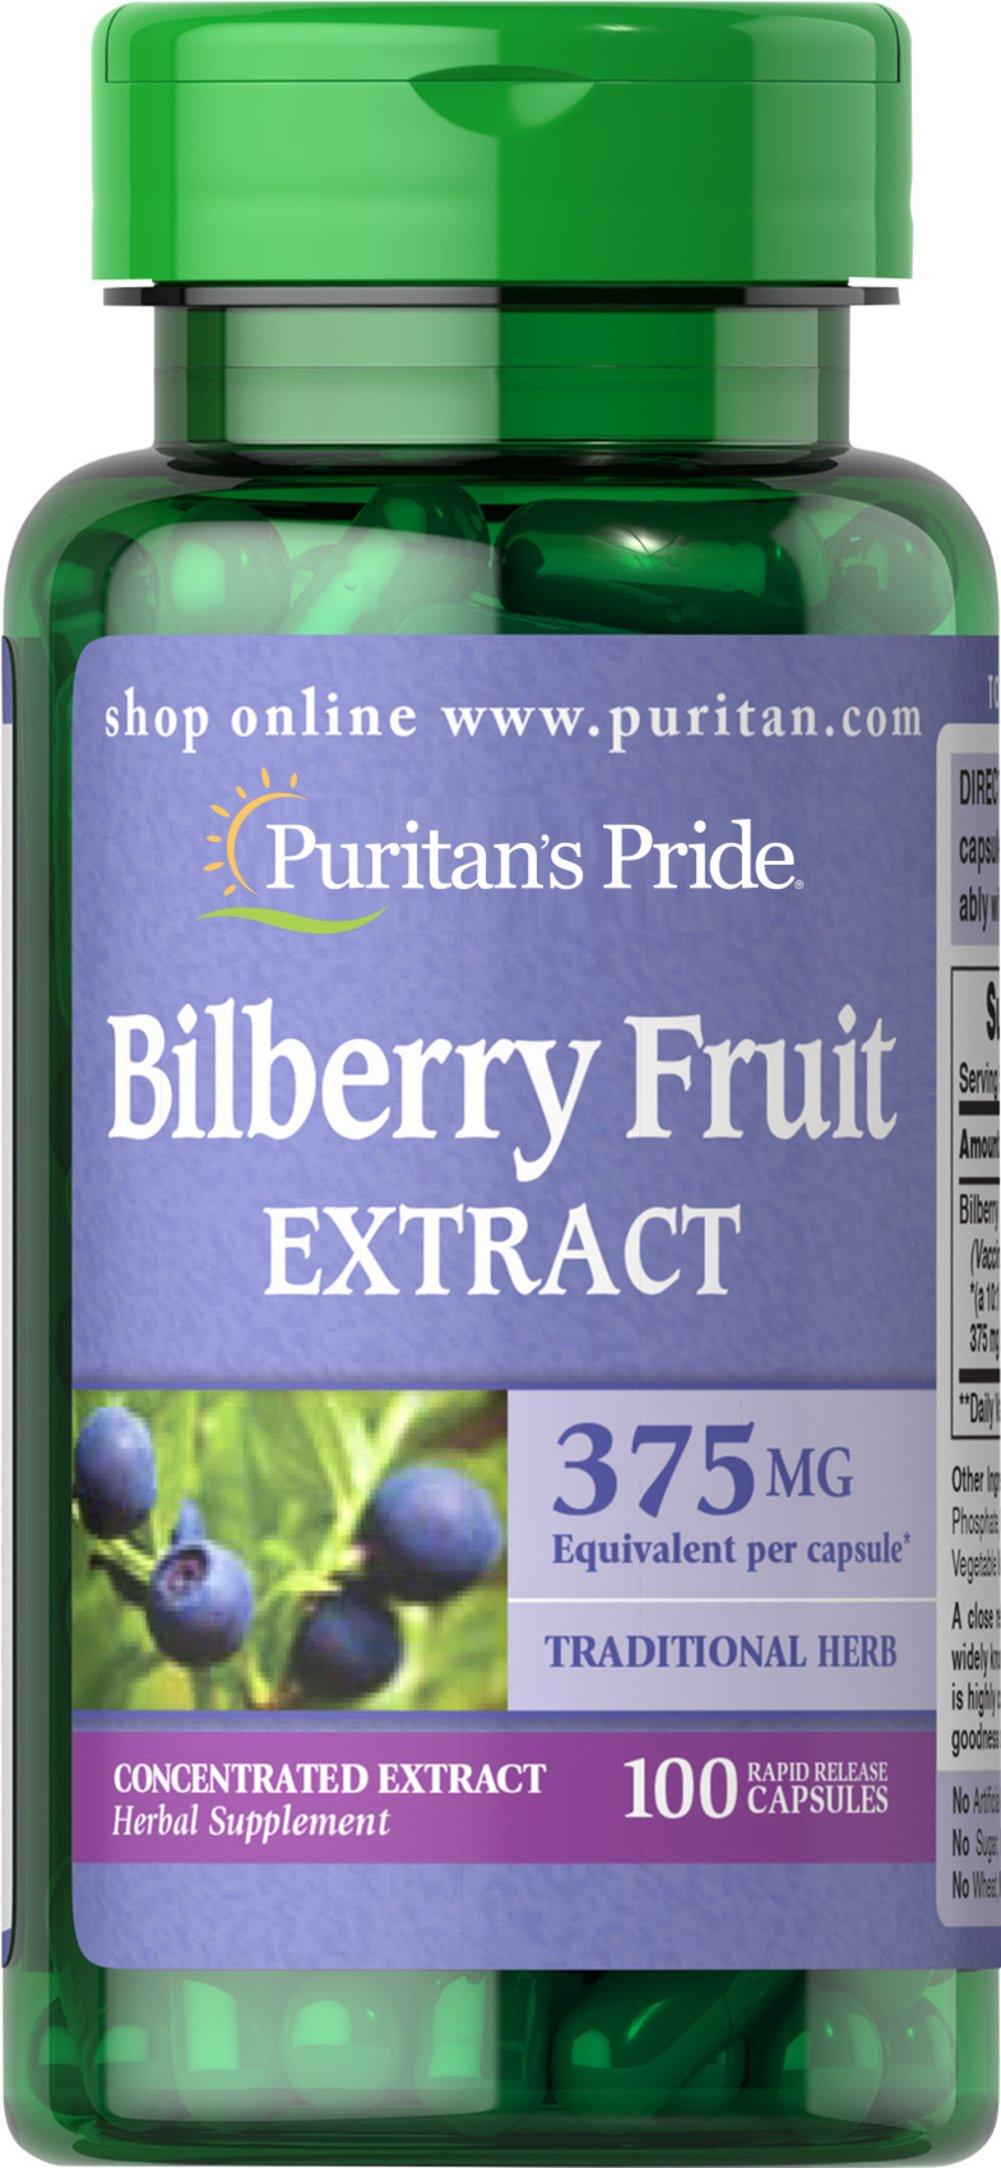 Bilberry 10:1 Extract 375 mg <p>Bilberry is a close relative of Blueberries. Our high-quality Bilberry contains over 15 different naturally-occurring anthocyanosides, which are flavonoids that contain beneficial antioxidant properties.** This formula contains 375 mg Bilberry (Vaccinium myrtillus) (fruit) (from 37.5 mg of 10:1 Extract).</p>  100 Capsules 375 mg $8.49